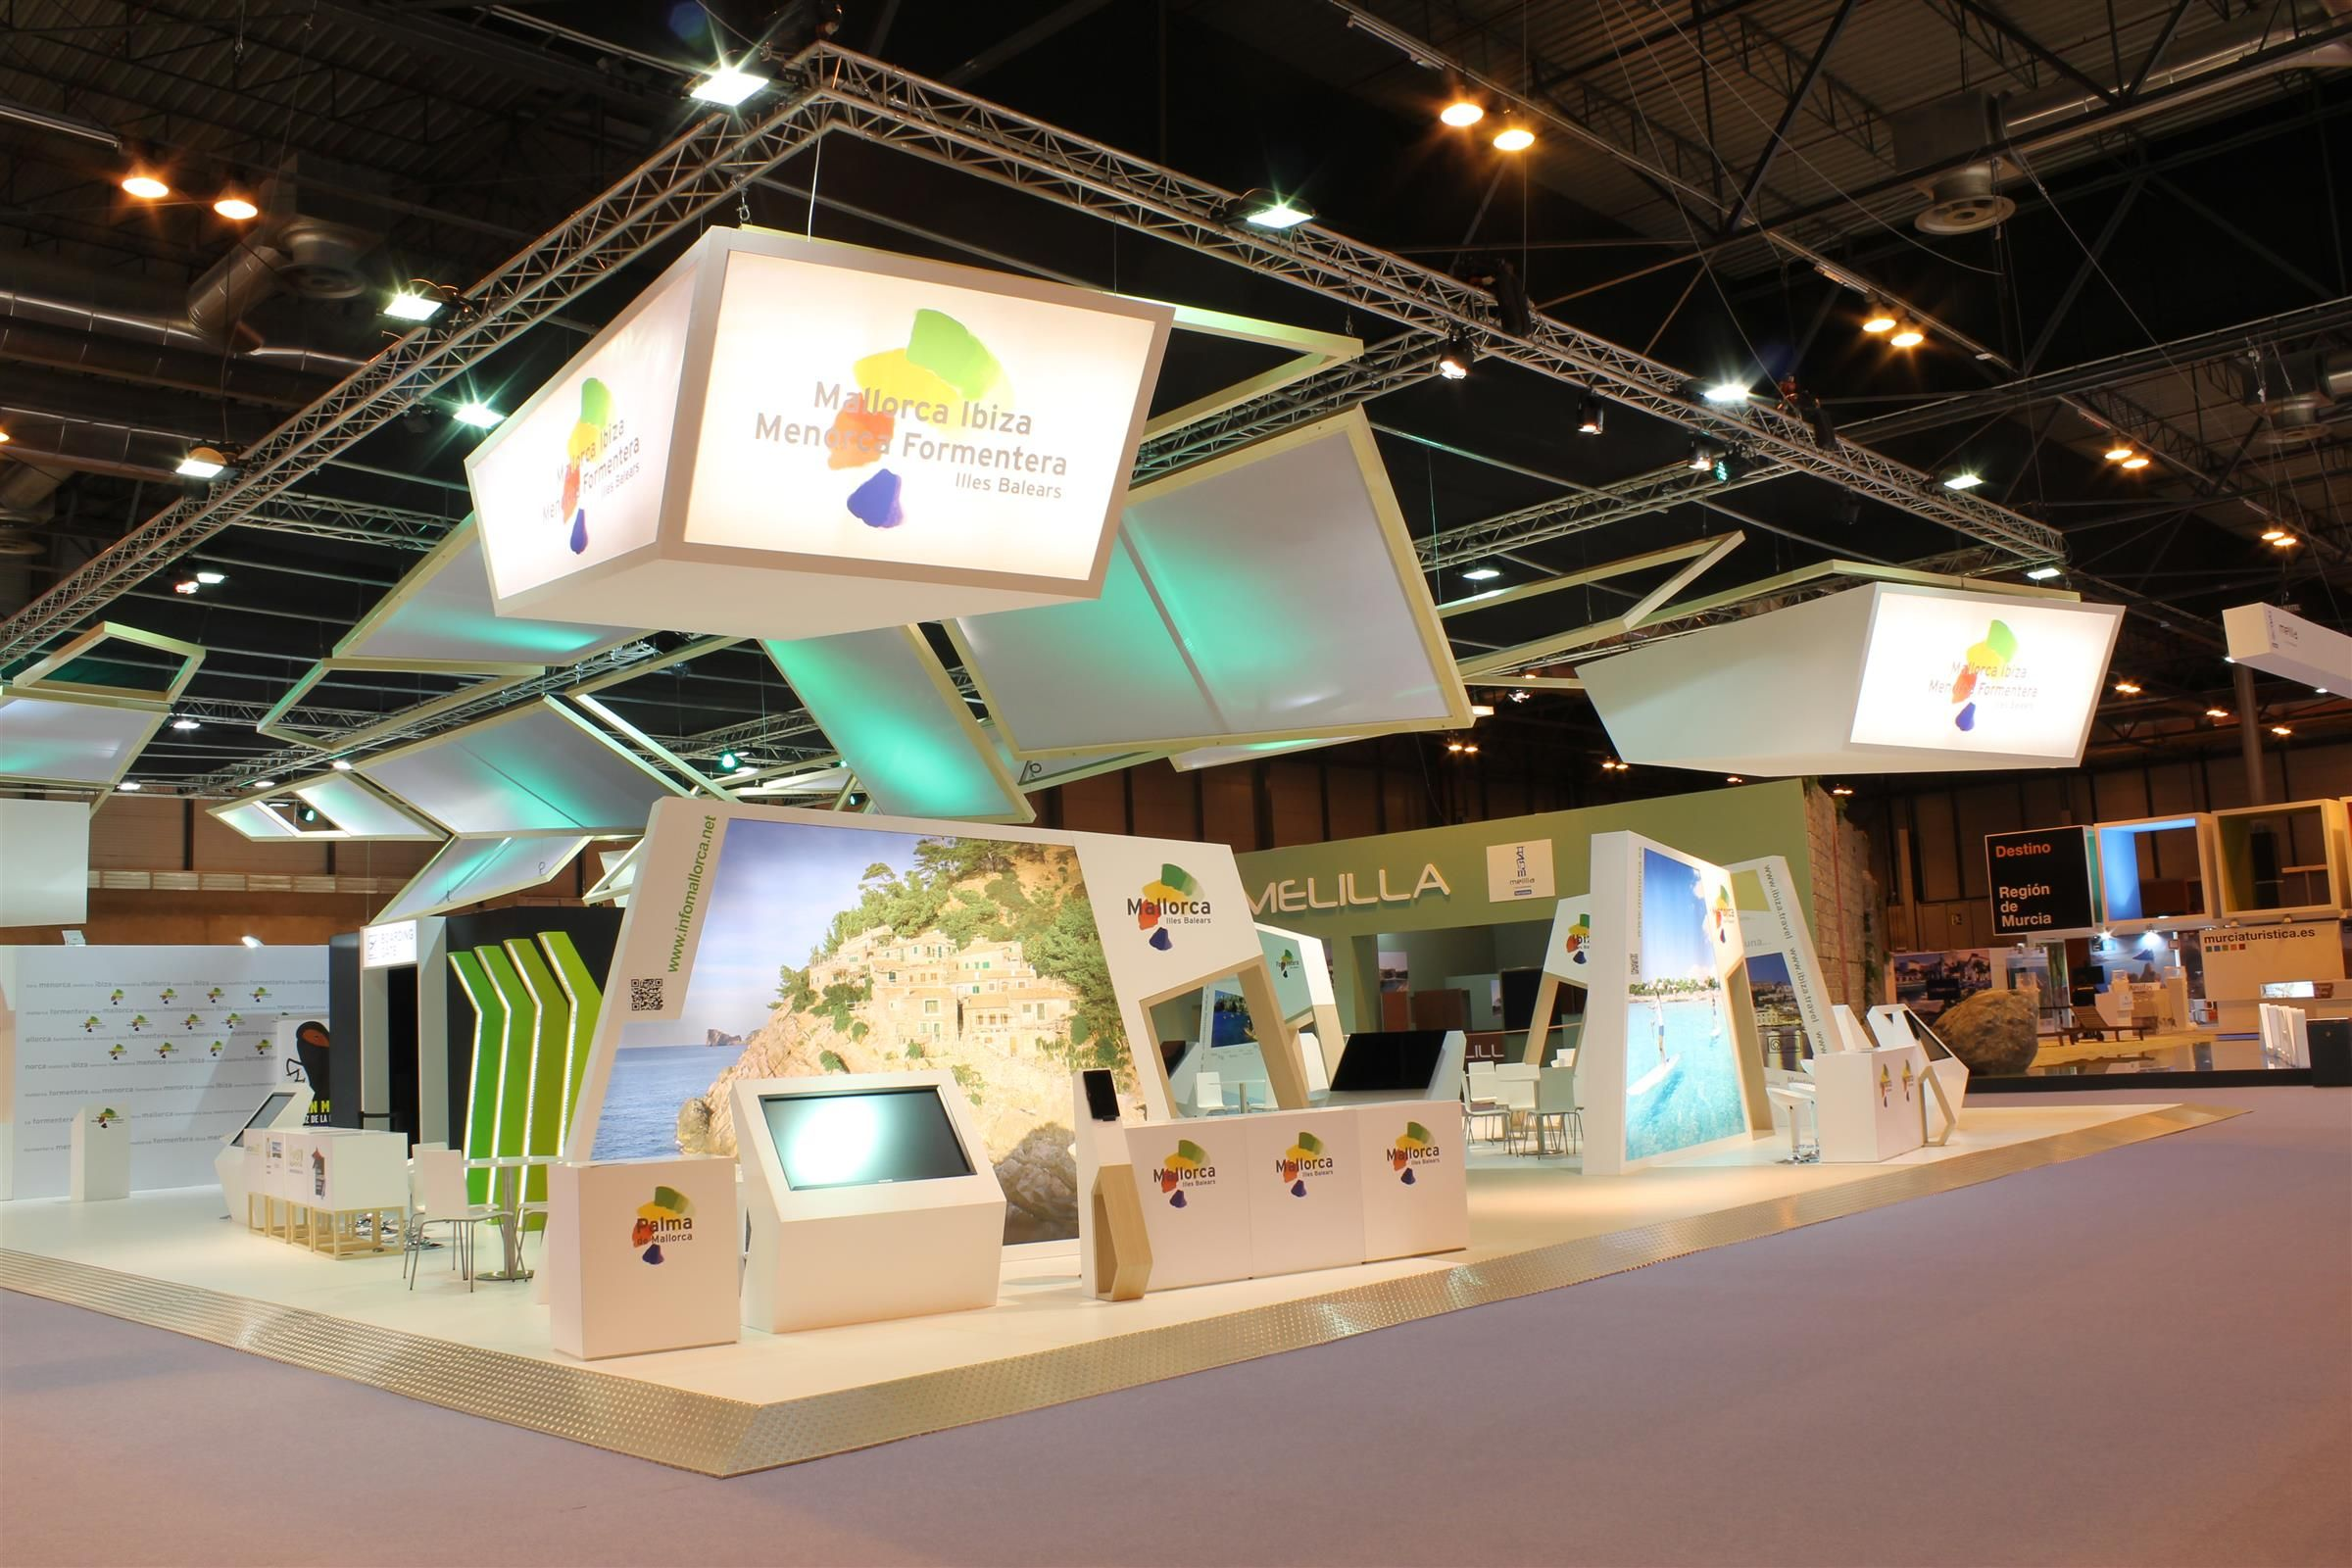 Exhibition Stand Builders Es : Stand for atb illesbalears at last fitur edition